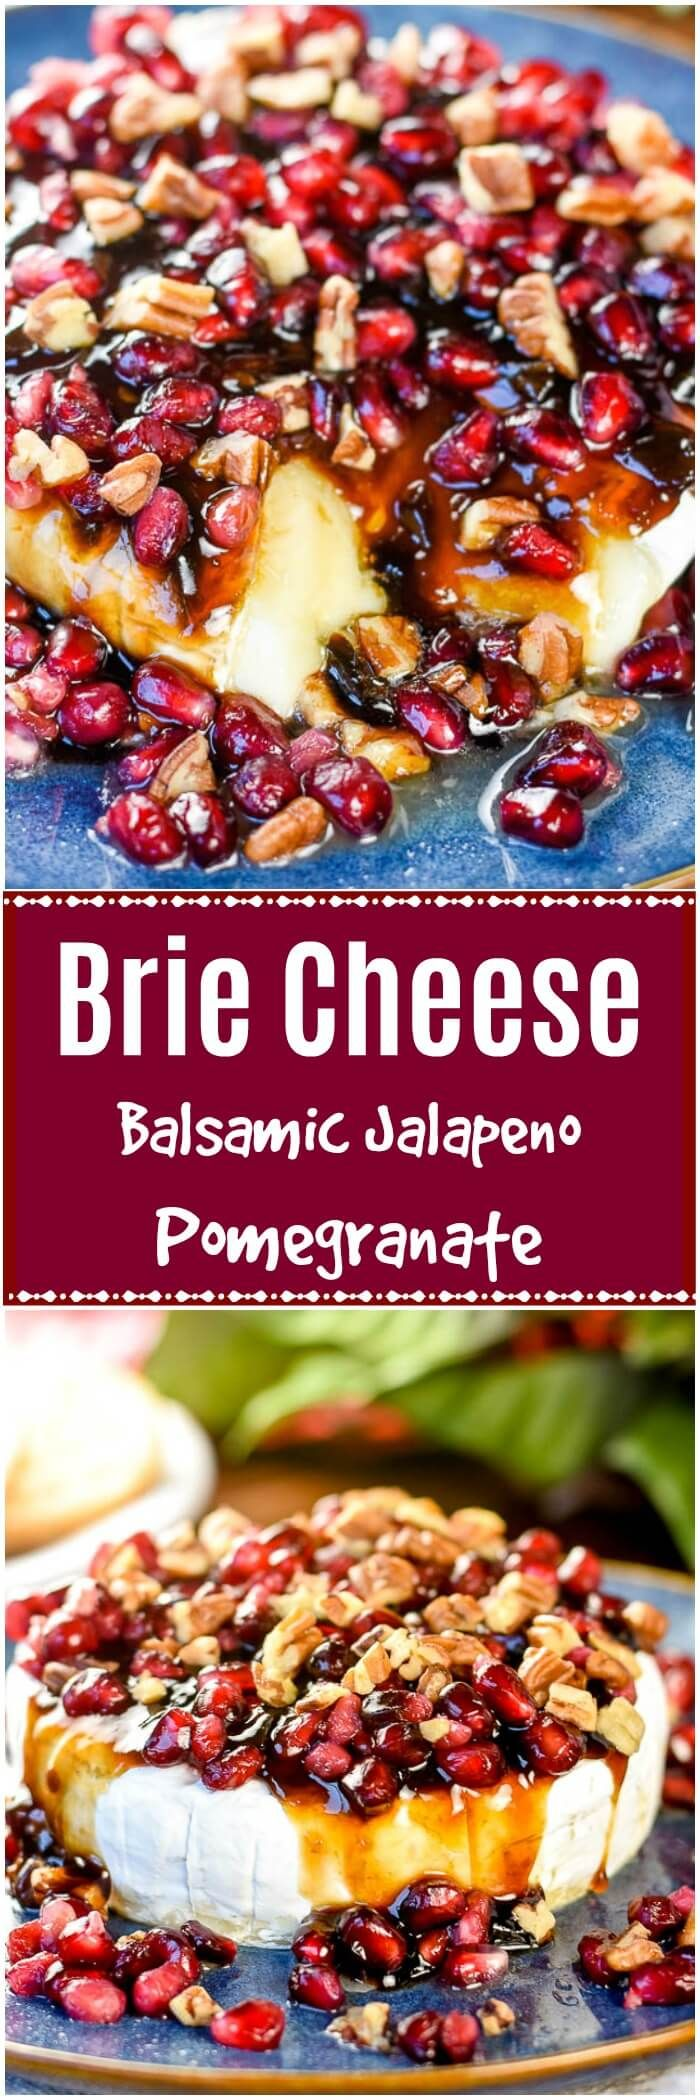 Balsamic Jalapeño Pomegranate Brie Cheese with pecans makes an elegant gourmet holiday appetizer that is ready in 5 minutes with only 4 ingredients.  #BrieCheese #HolidayAppetizer  via @flavormosaic